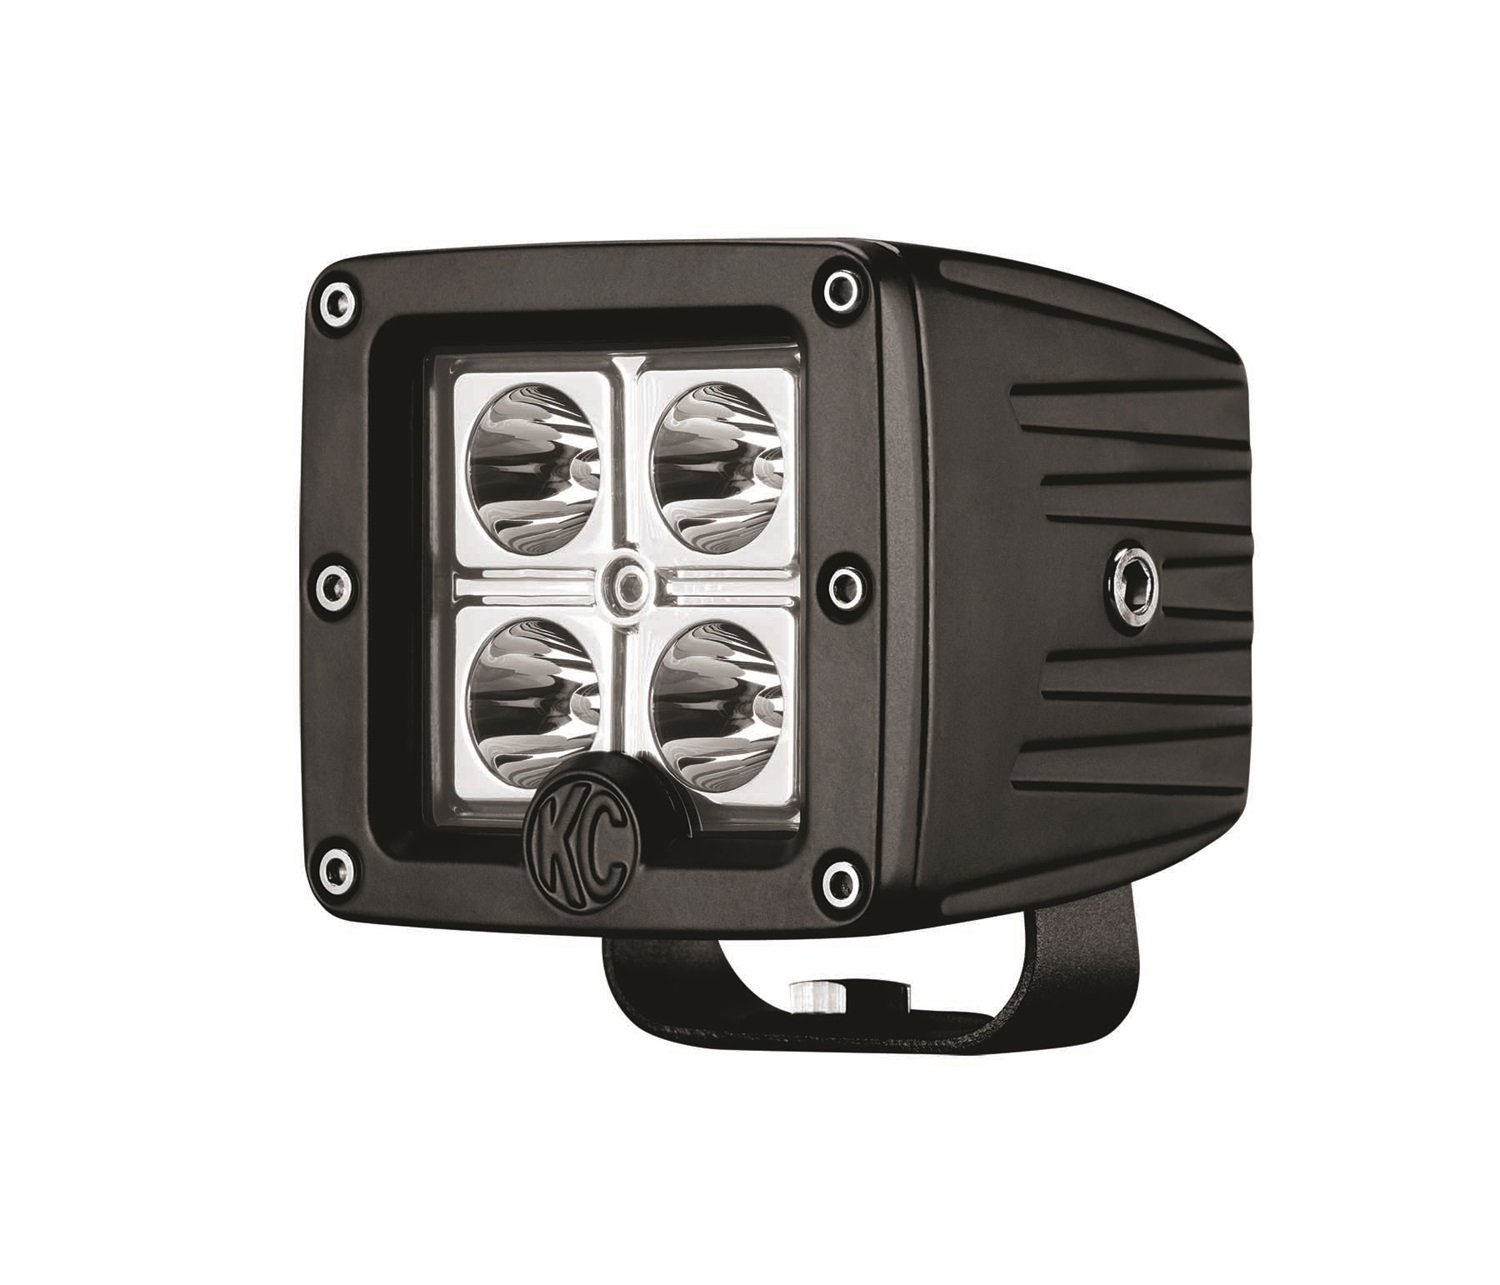 KC HiLiTES 1330 C3 3' 12W LED Spot Light